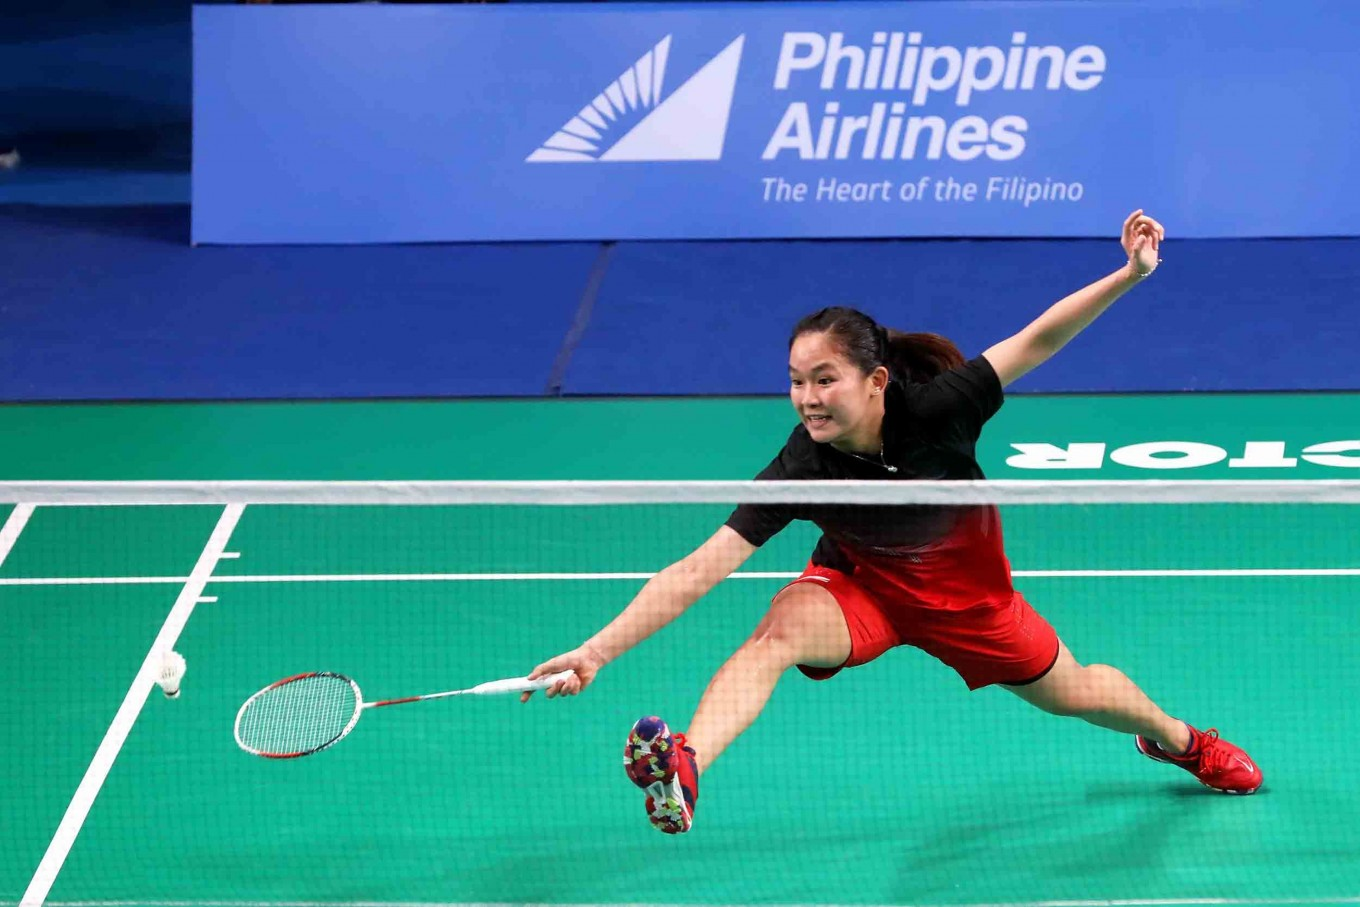 SEA Games: Indonesia reaches semis in women's team badminton with 3-1 win over Vietnam